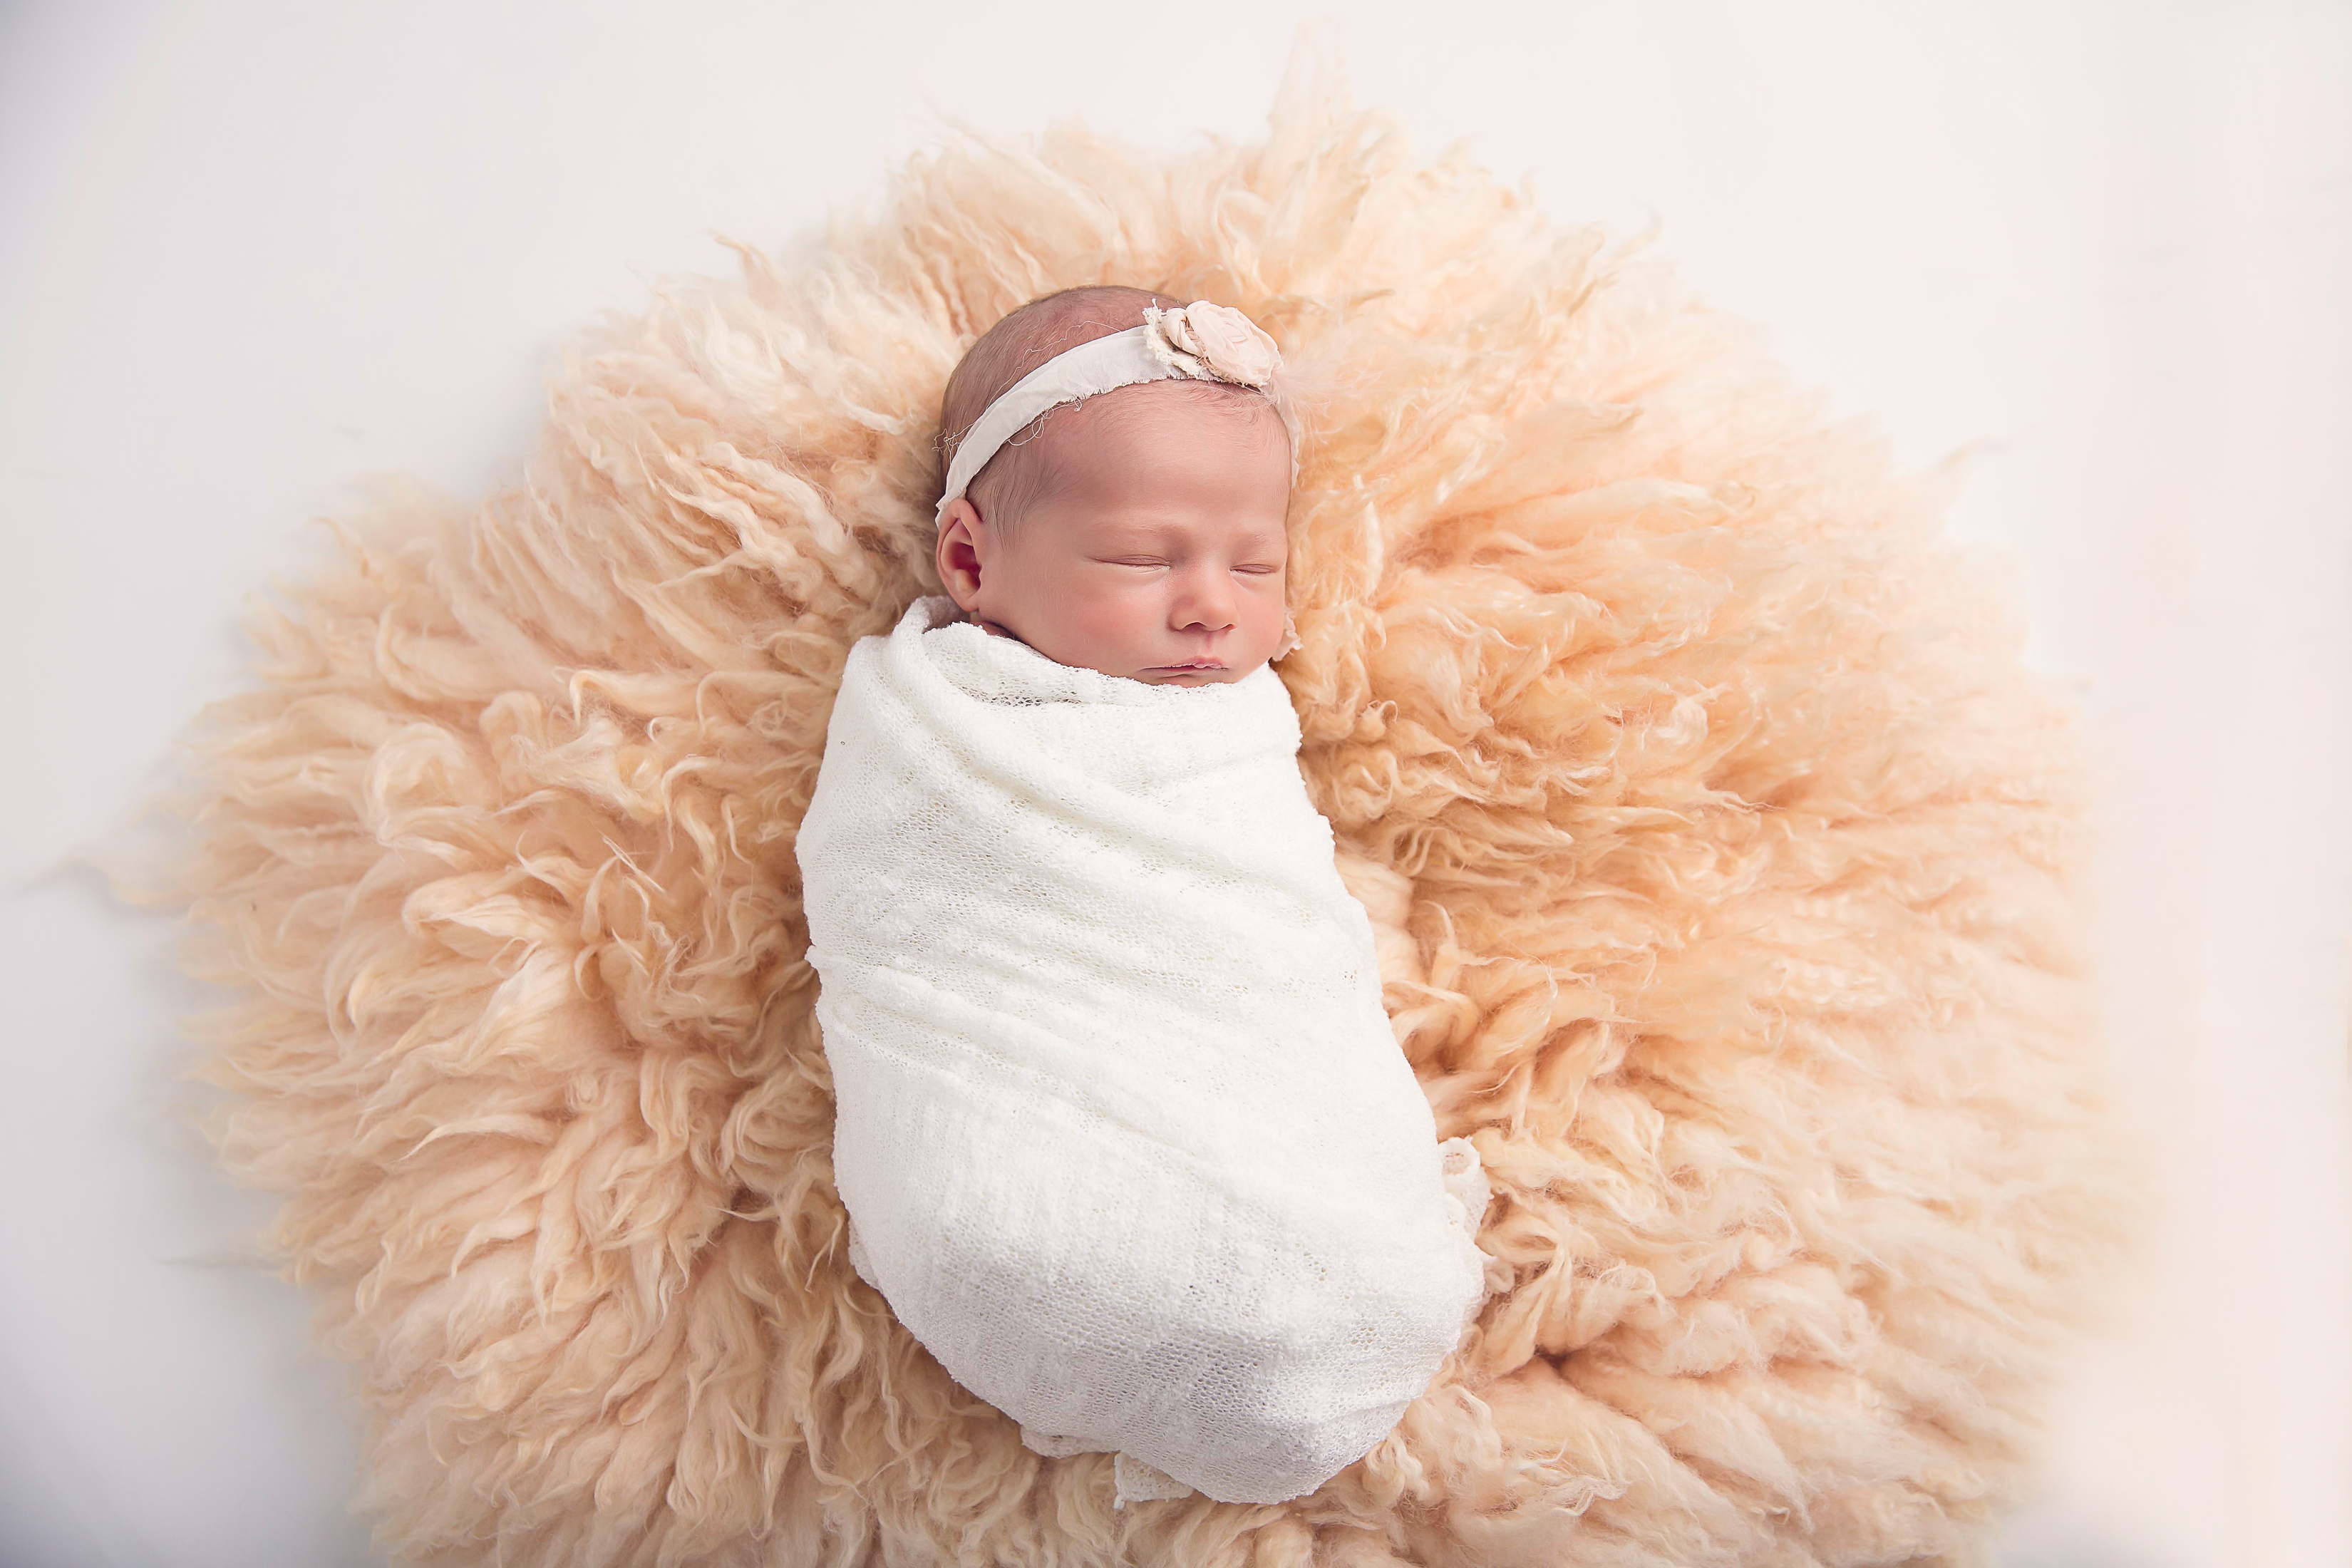 EverleeFoxNewborn53BellaFaithPhotography